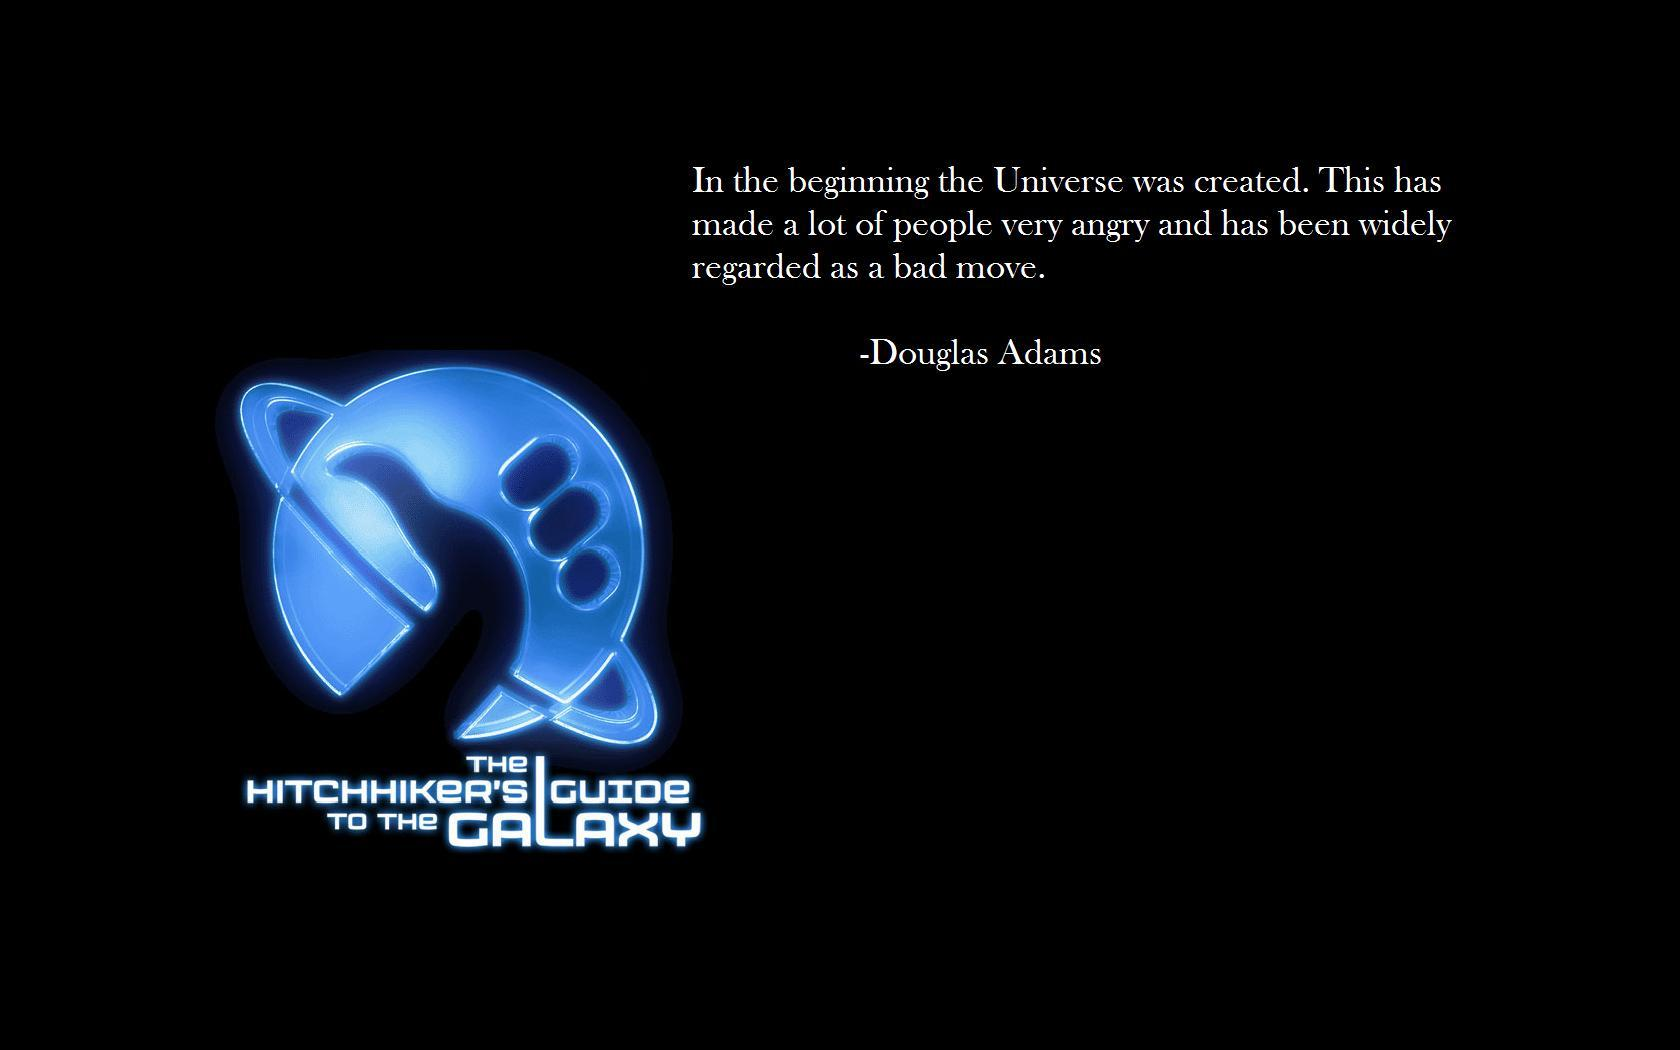 Douglas Adams The Hitchhikers HD Wallpaper